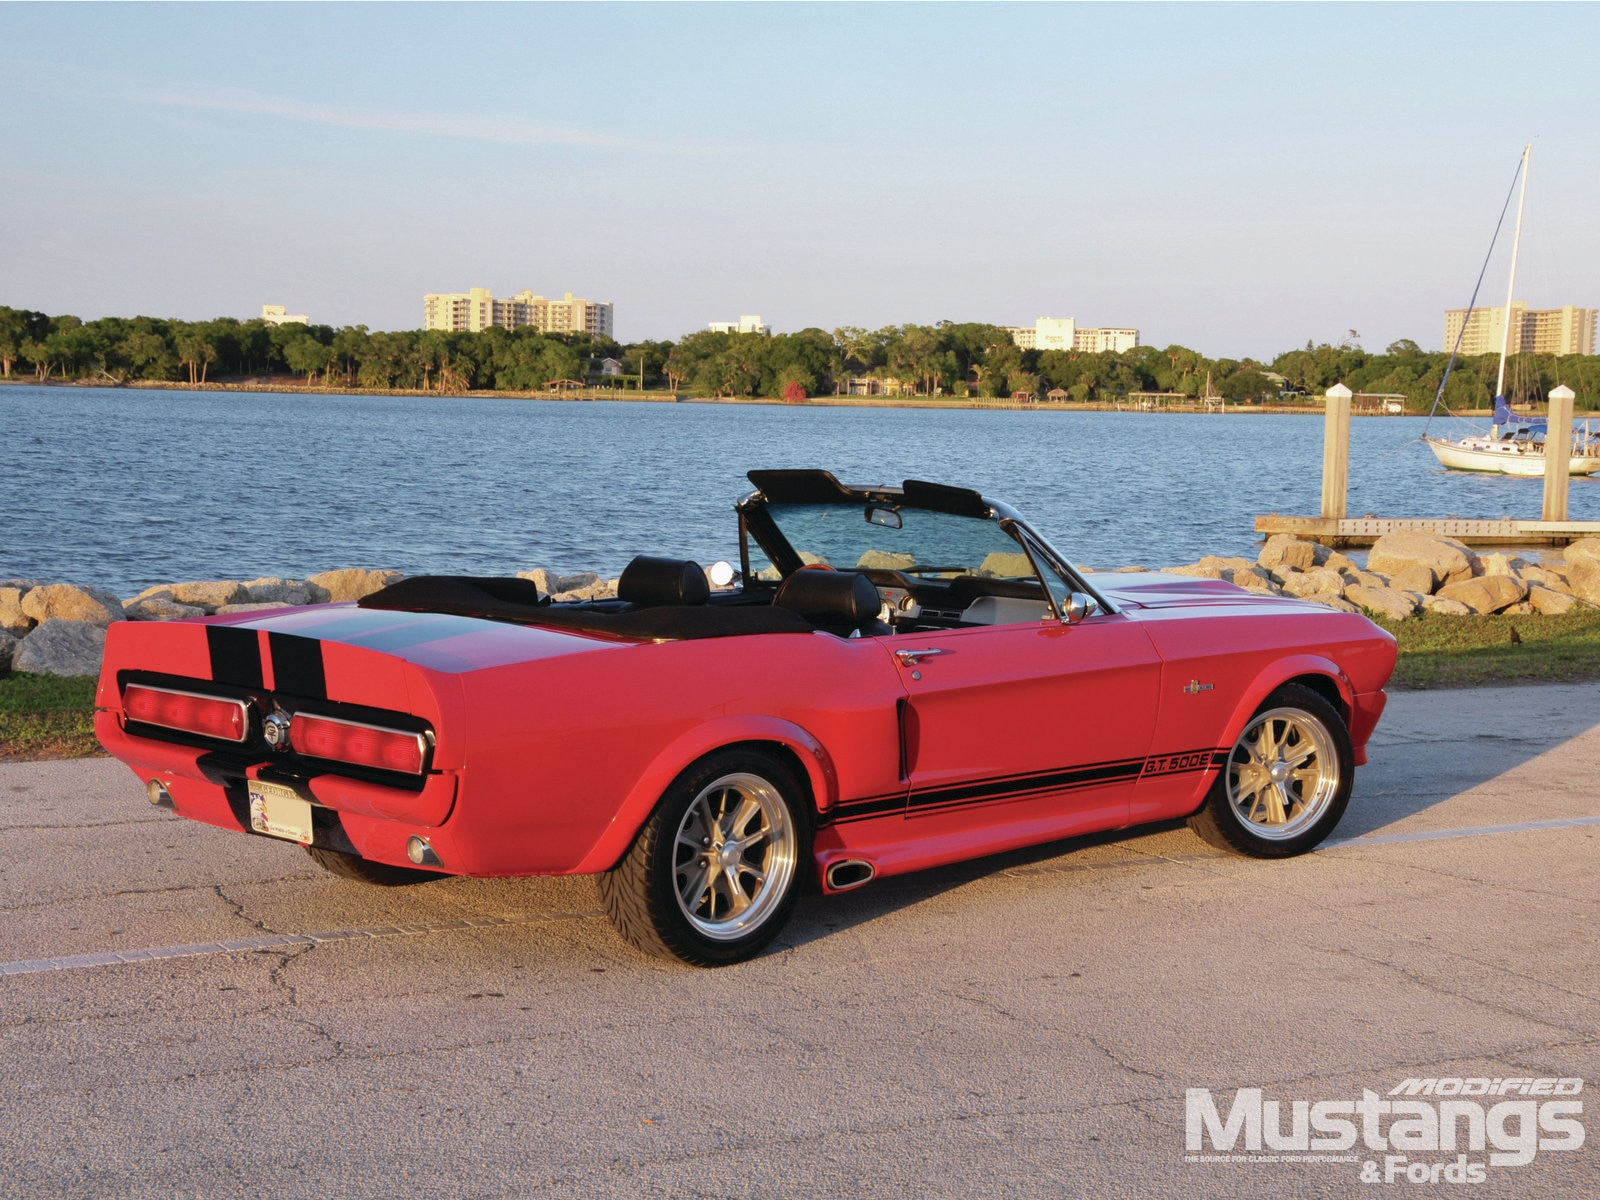 Mdmp 1111 1967 Ford Mustang Convertible Elanor Has A New Look 004